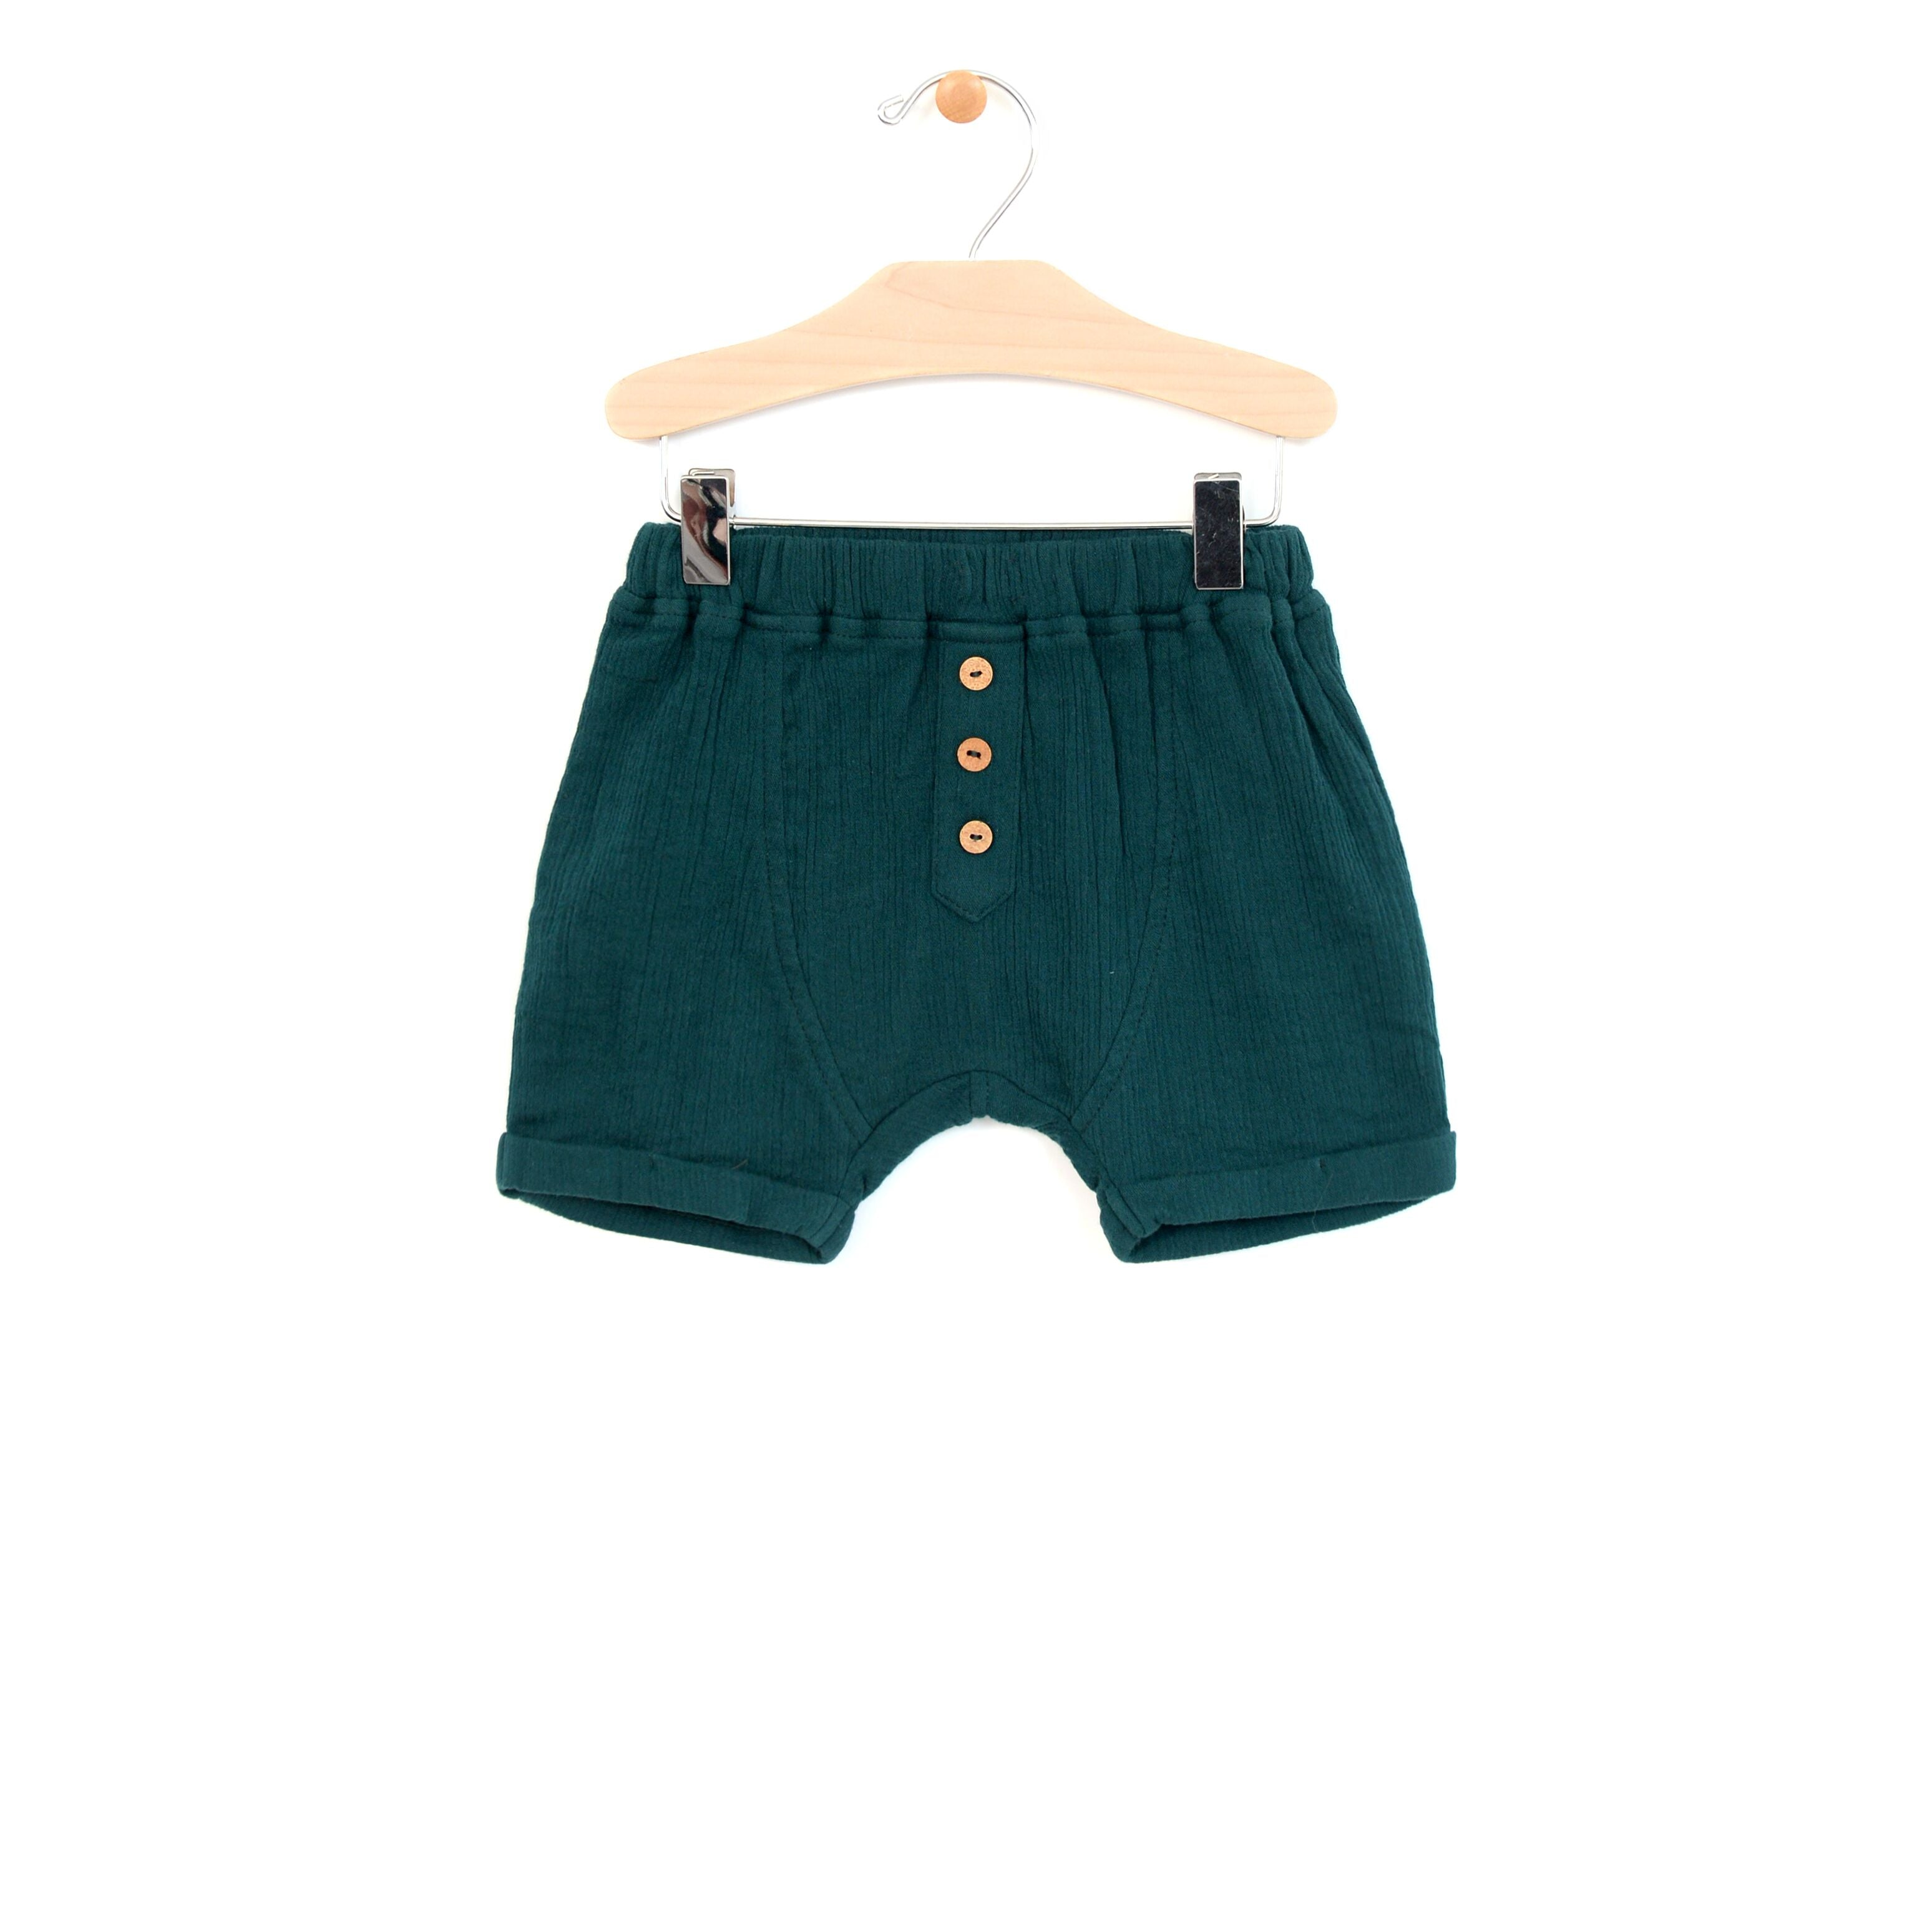 Crinkle Cotton Boy Short